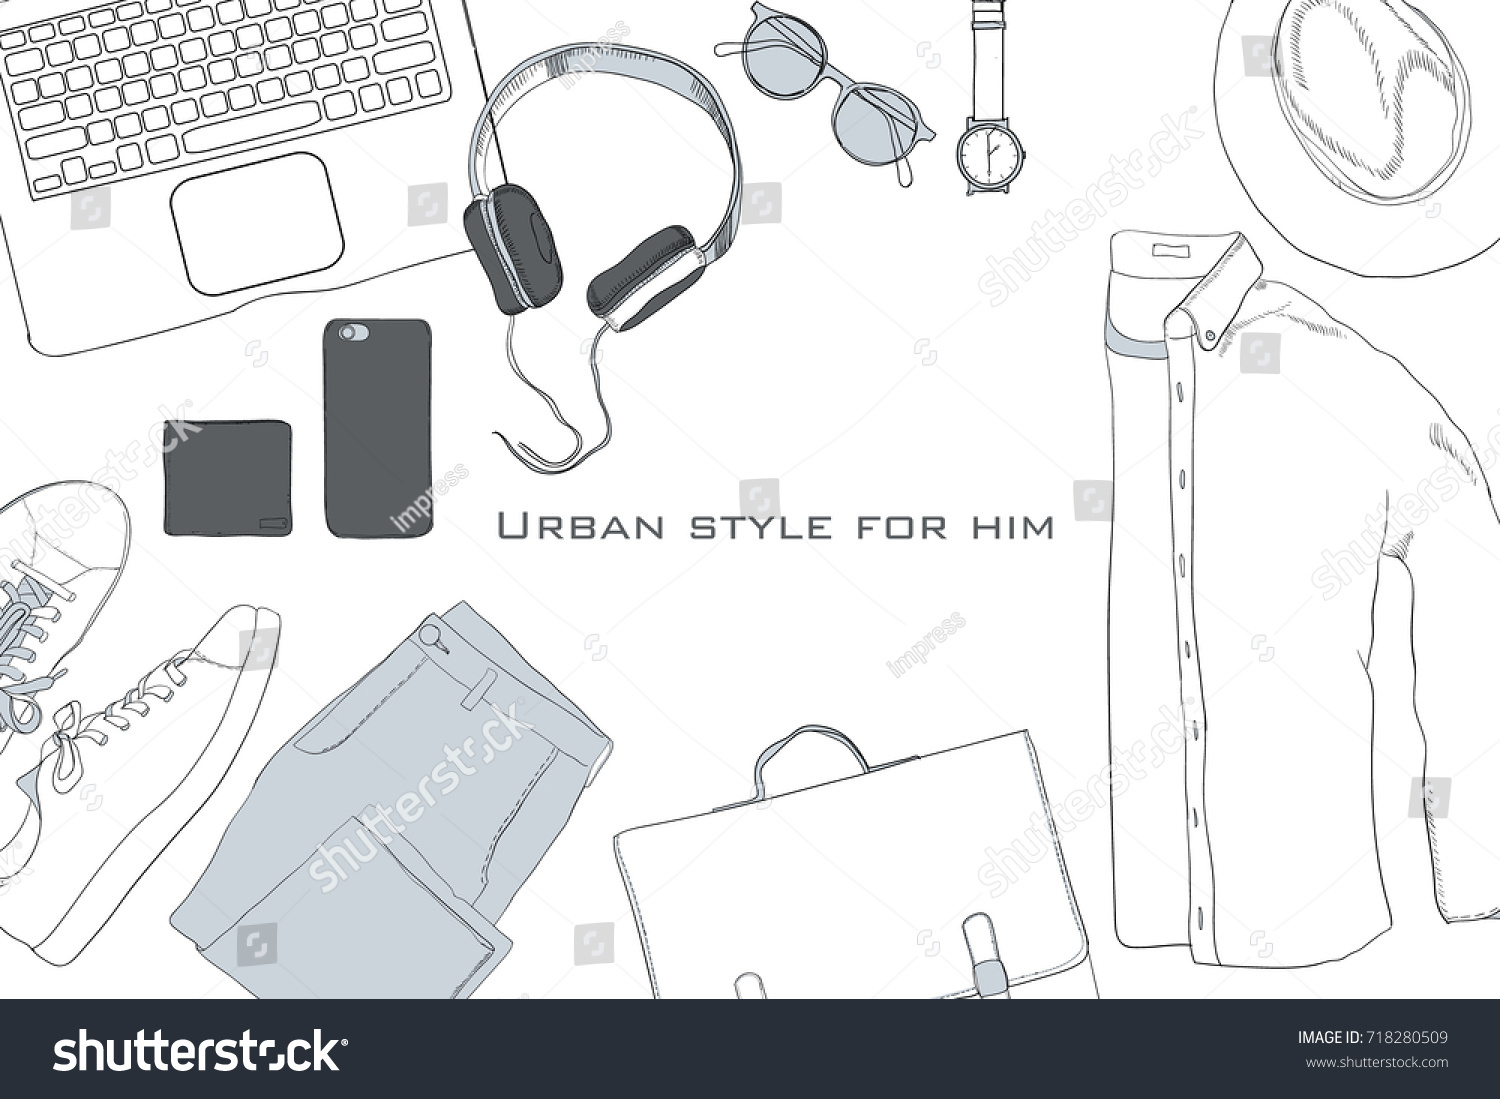 Shoe Tying Template Diagram How To Of Tie Shoes Stock Vector Illustration Hand Drawn Doodle Flat Lay Coordination Folded Shirt Trousers